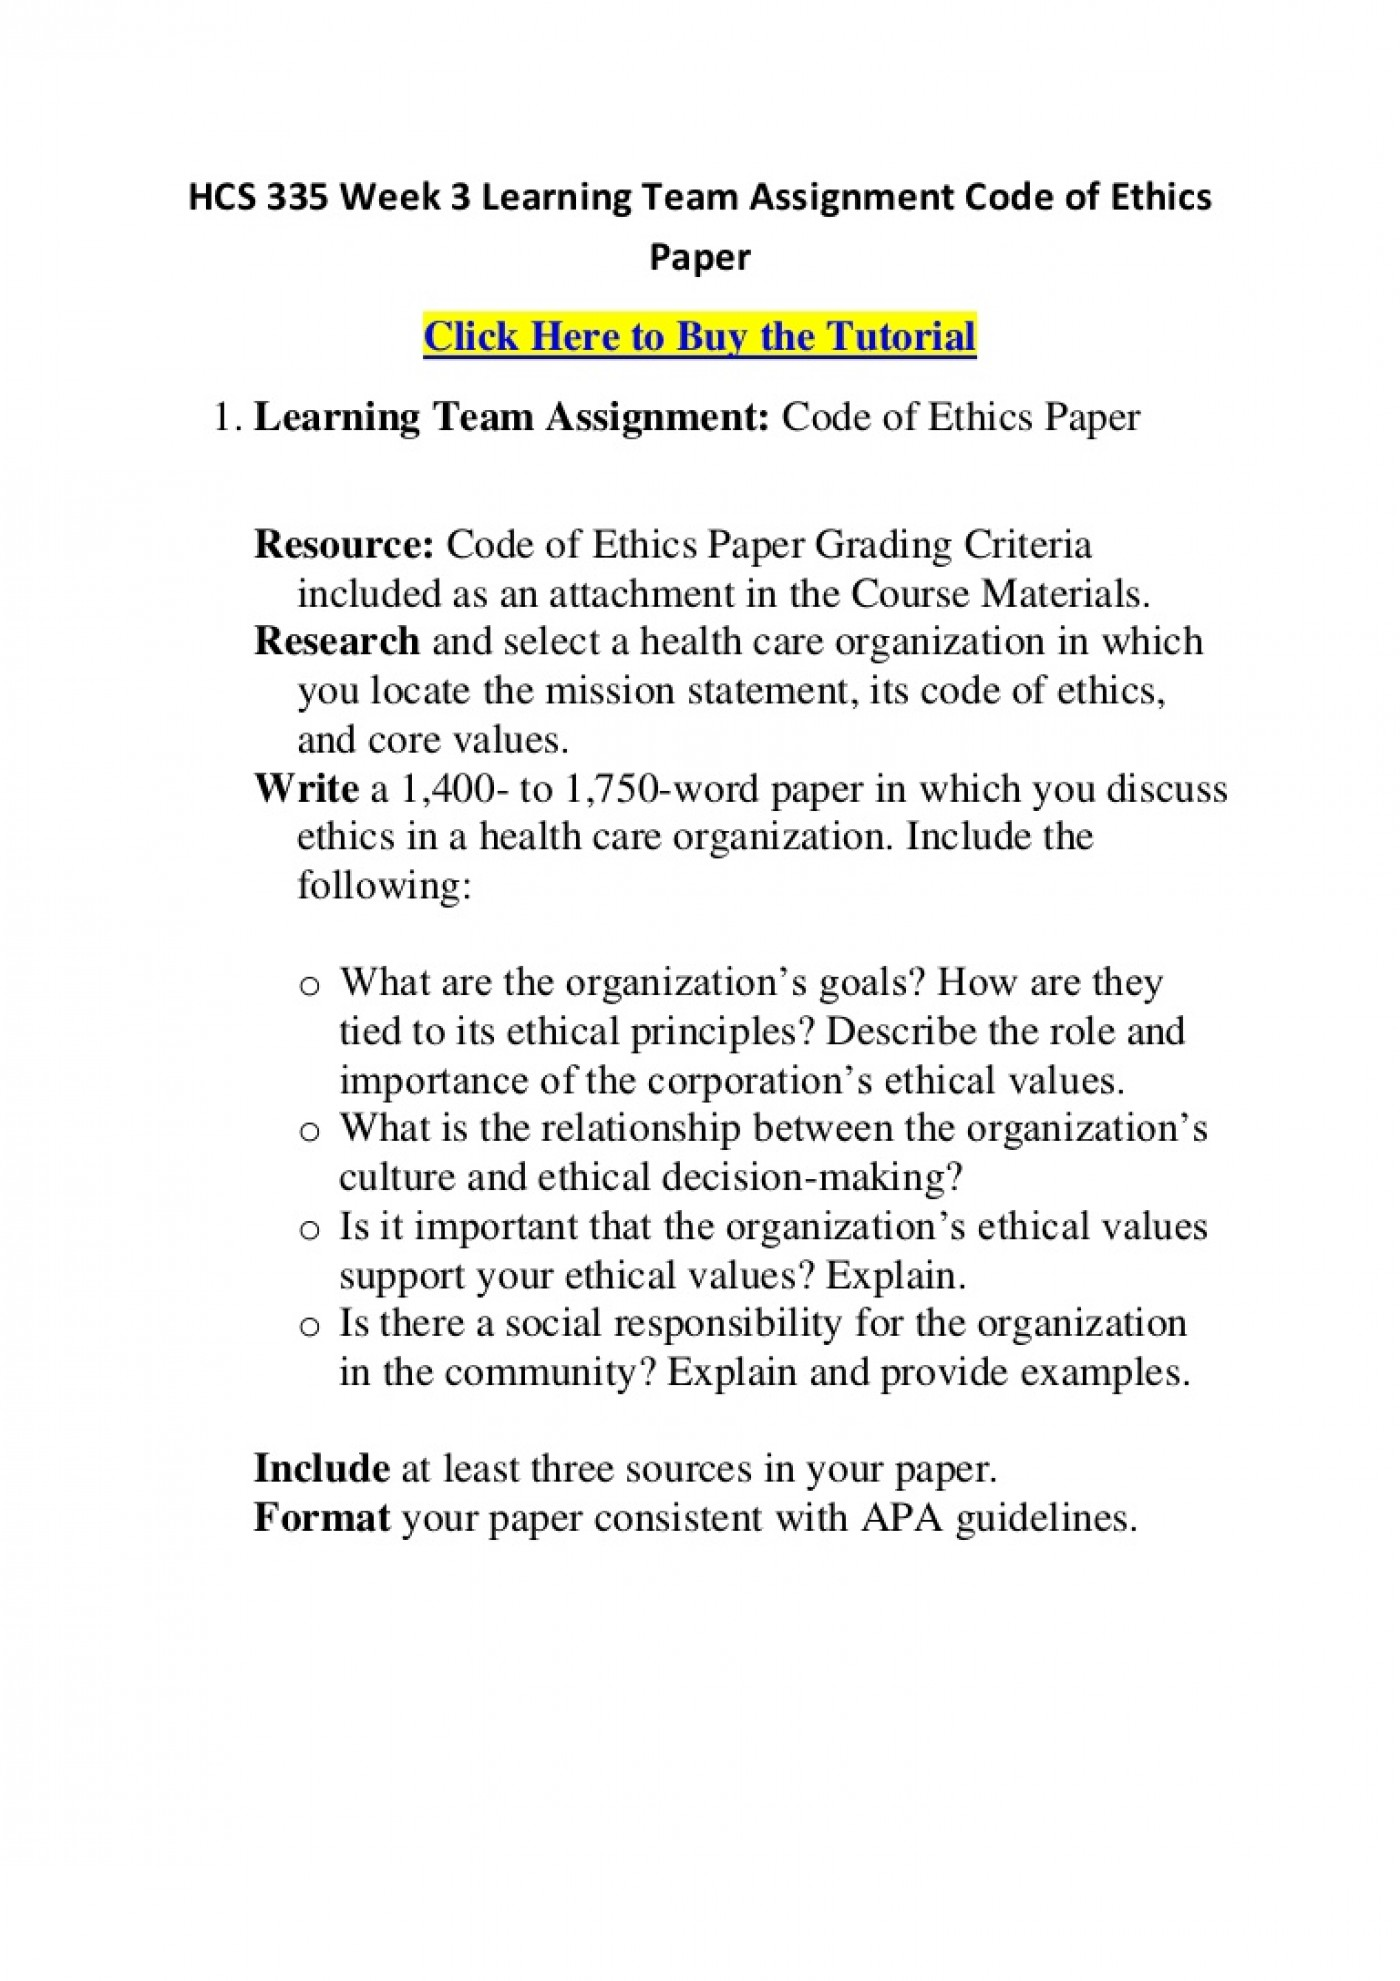 004 Hcs335week3learningteamassignmentcodeofethicspaper Phpapp01 Thumbnail Code Of Ethics Paper Essays Essay Surprising 1400